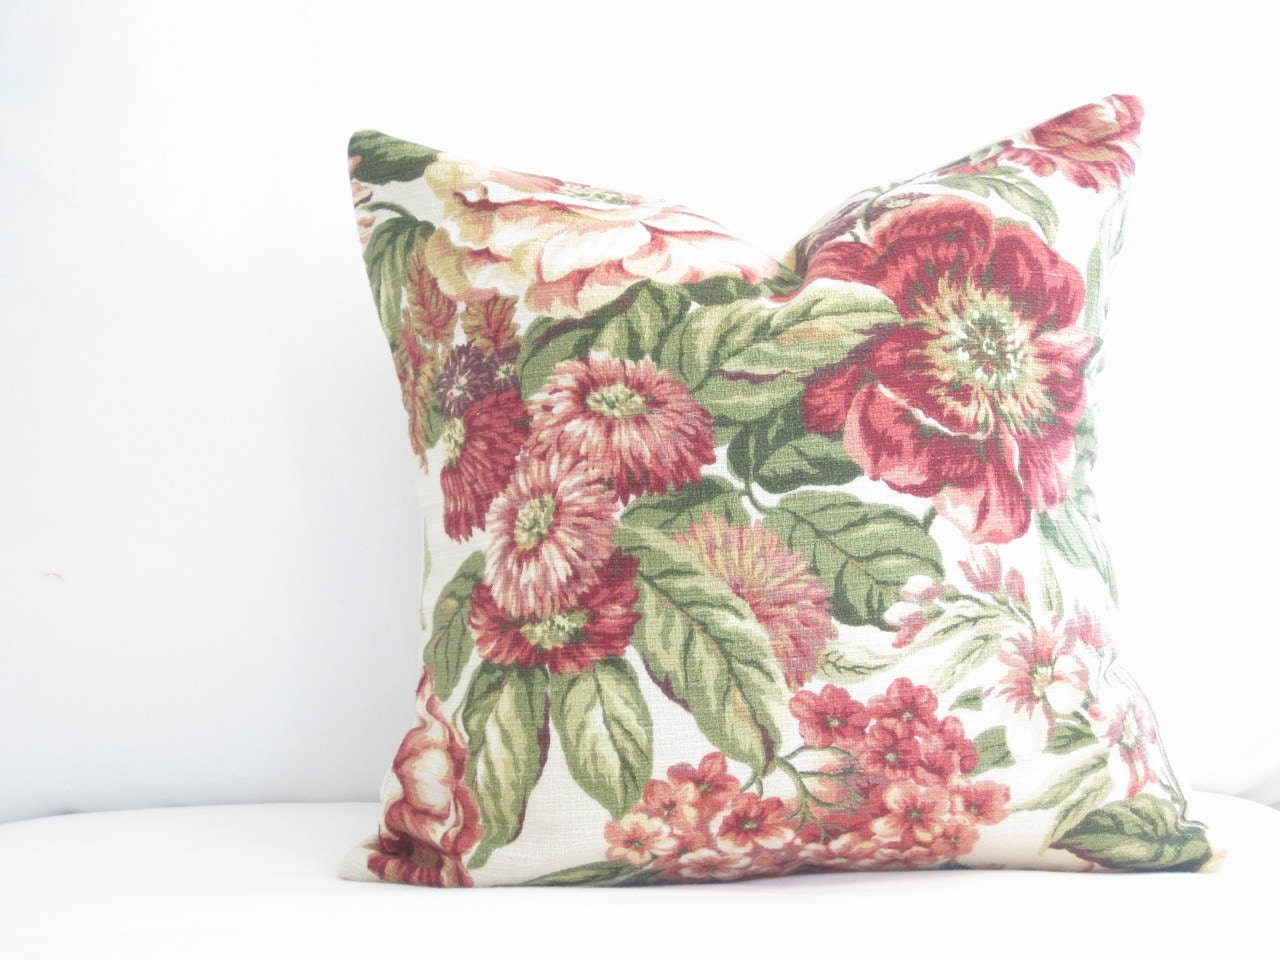 Decorative Flower Pillows : 16x16 inch red floral decorative pillow floral by FineFreshDesign